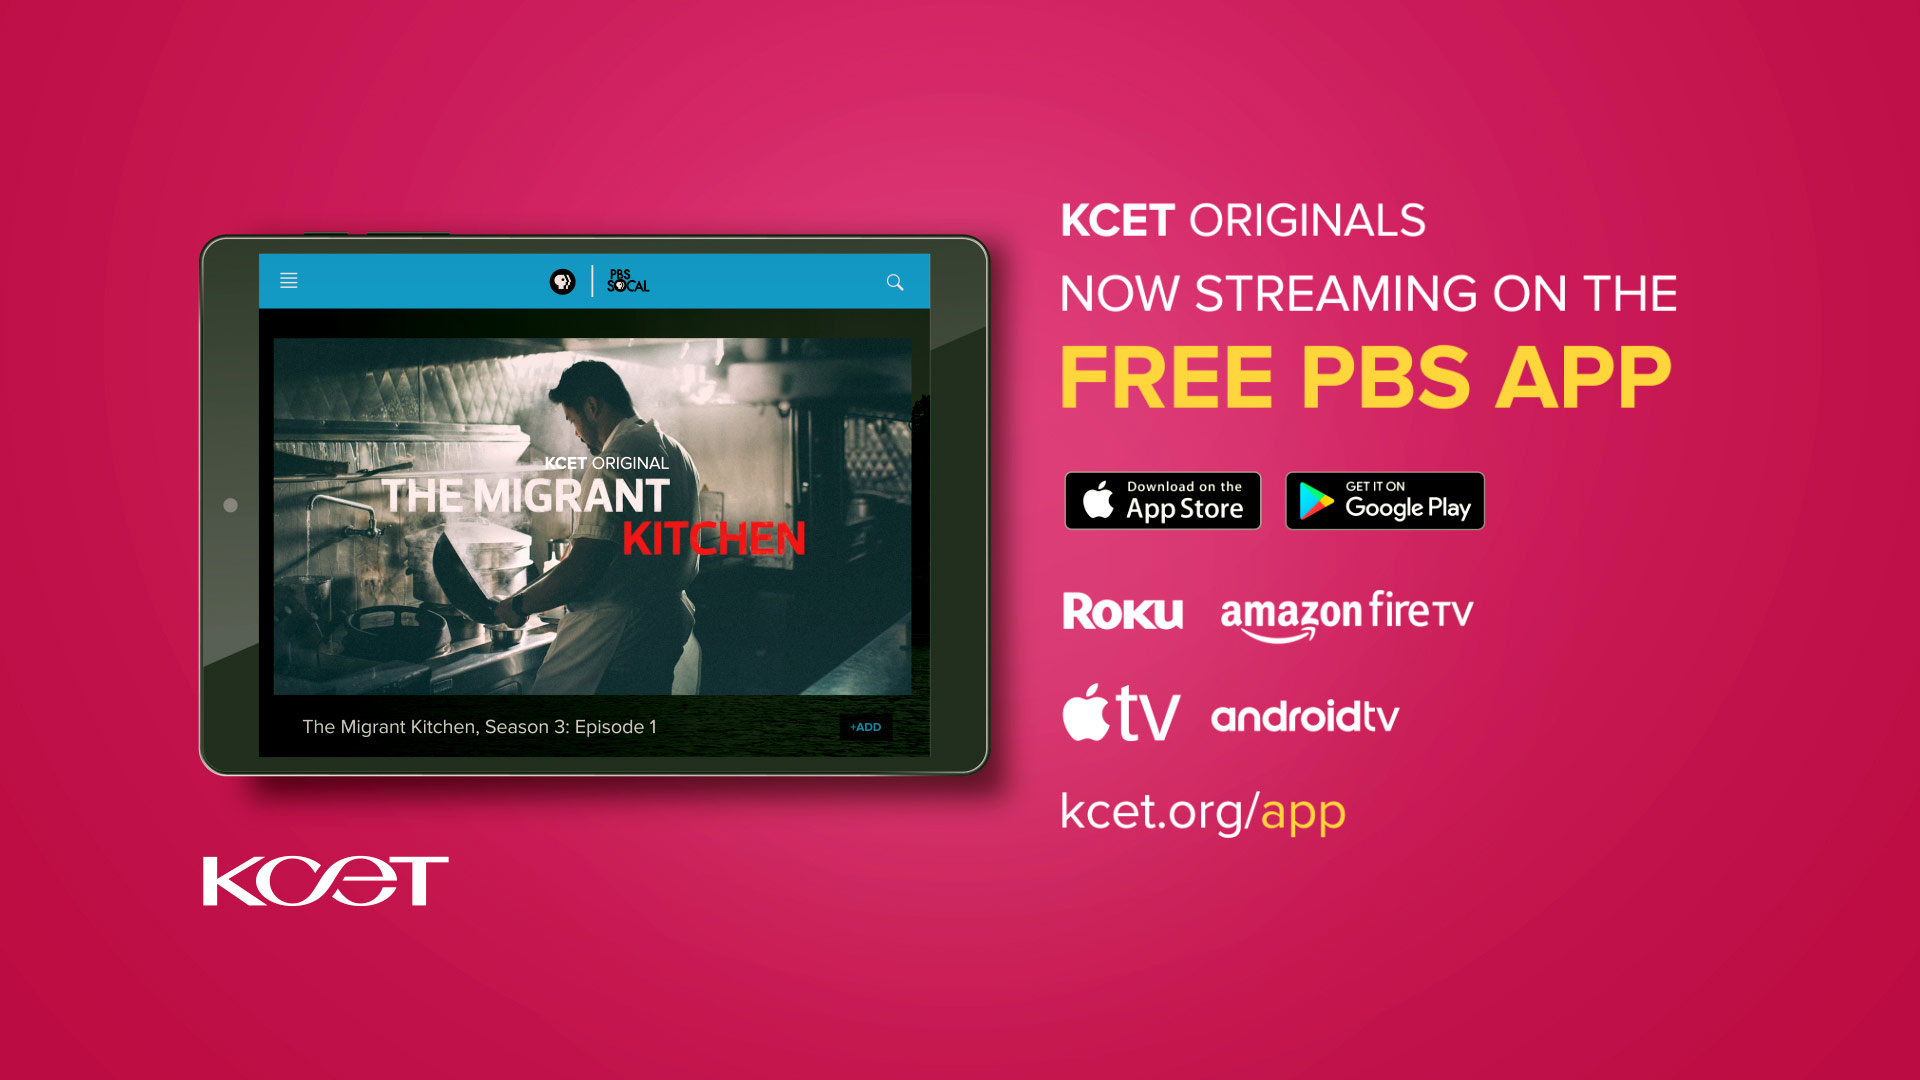 Get the Free PBS App